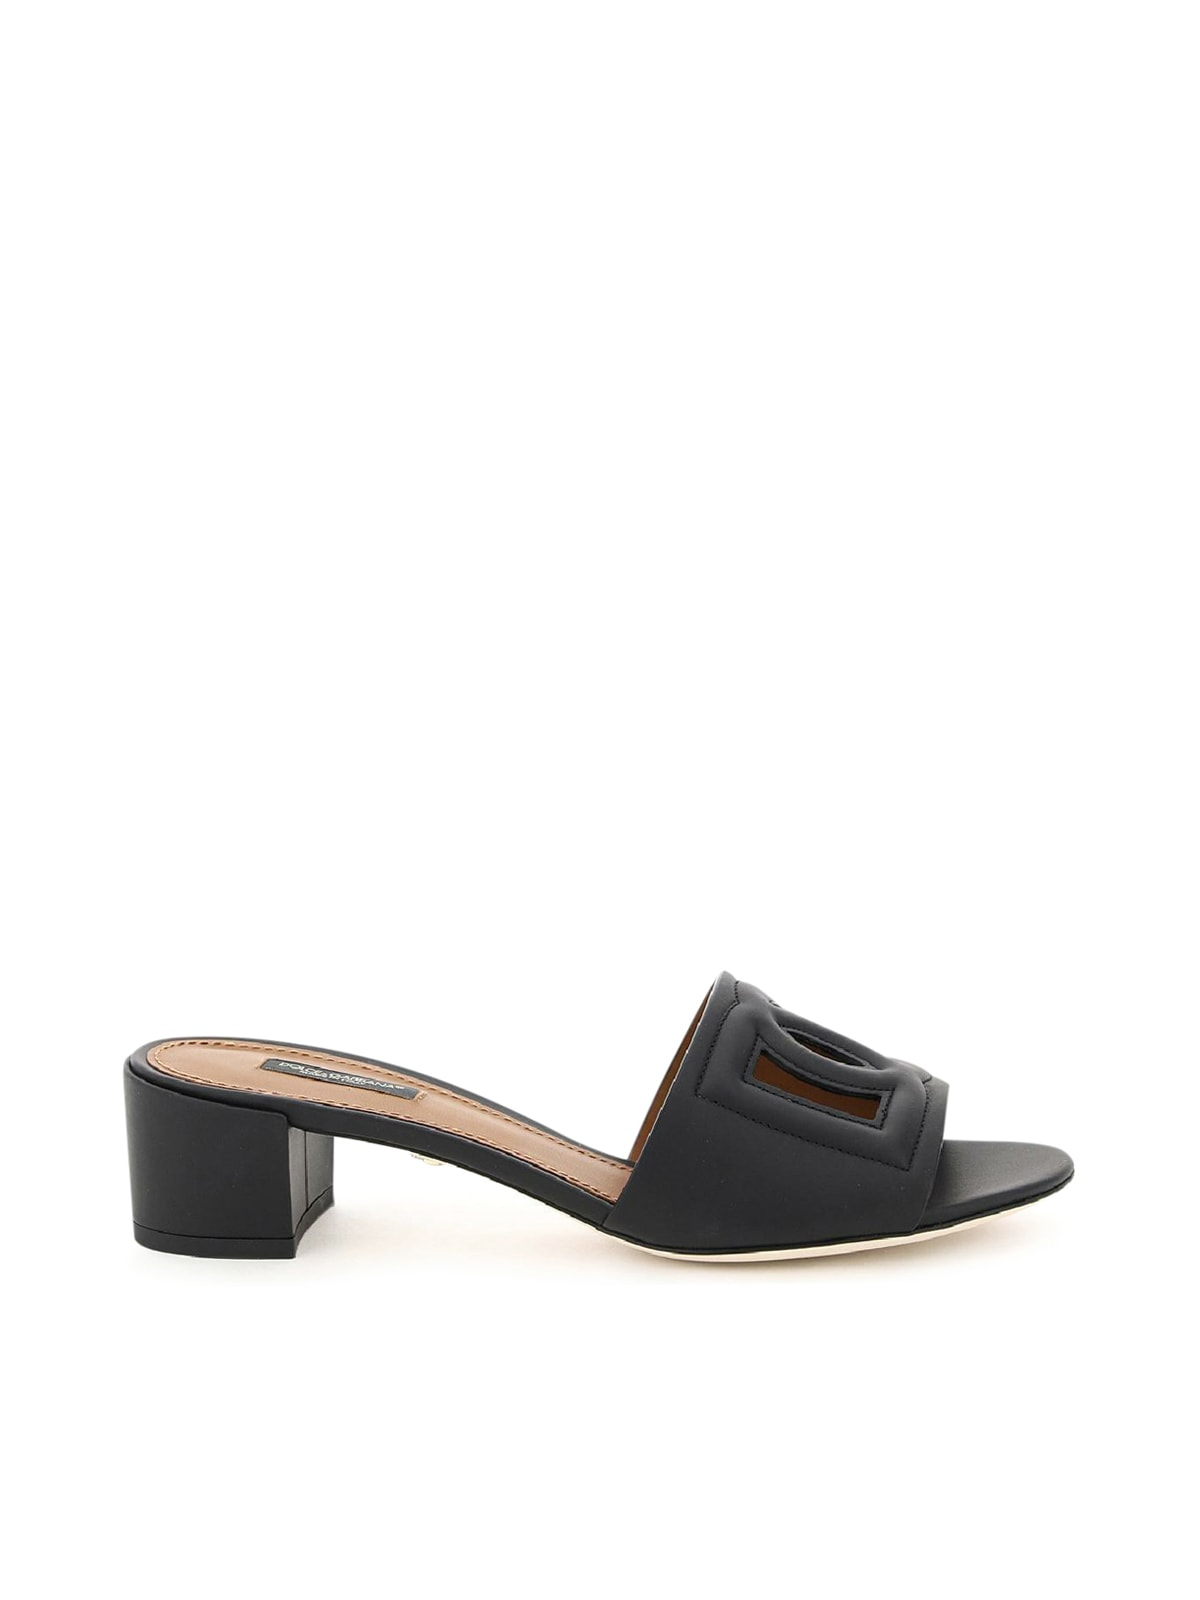 Dolce & Gabbana Leathers LOGO EMBOSSED MULE SANDALS